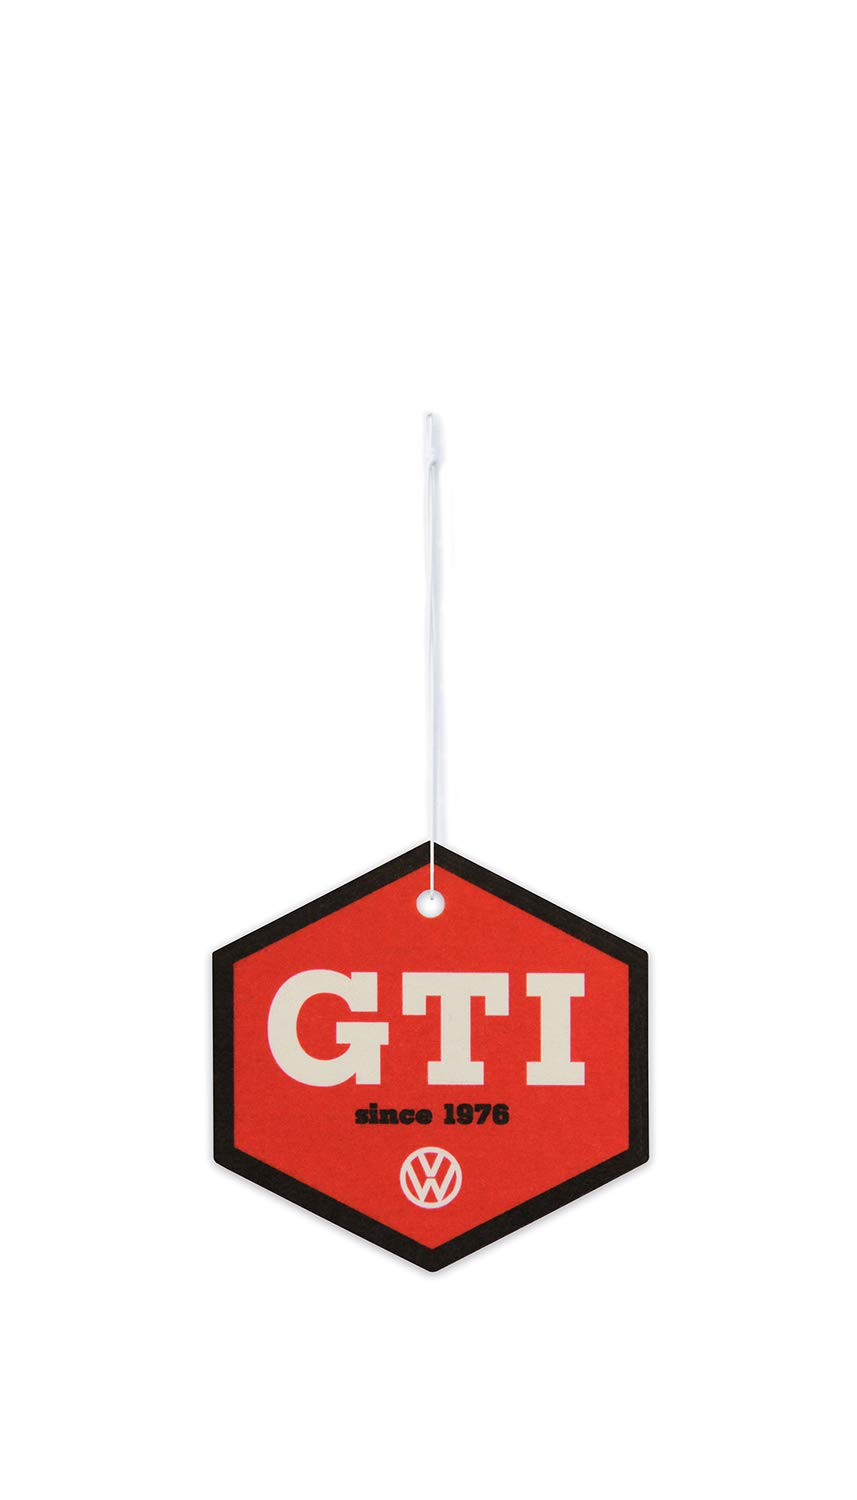 BRISA VW Collection - Volkswagen Golf GTI Scented Car Air Freshener Fragrance Deodorizer for Car/Auto or Home (Hexagon/Cocos/Since 1967)